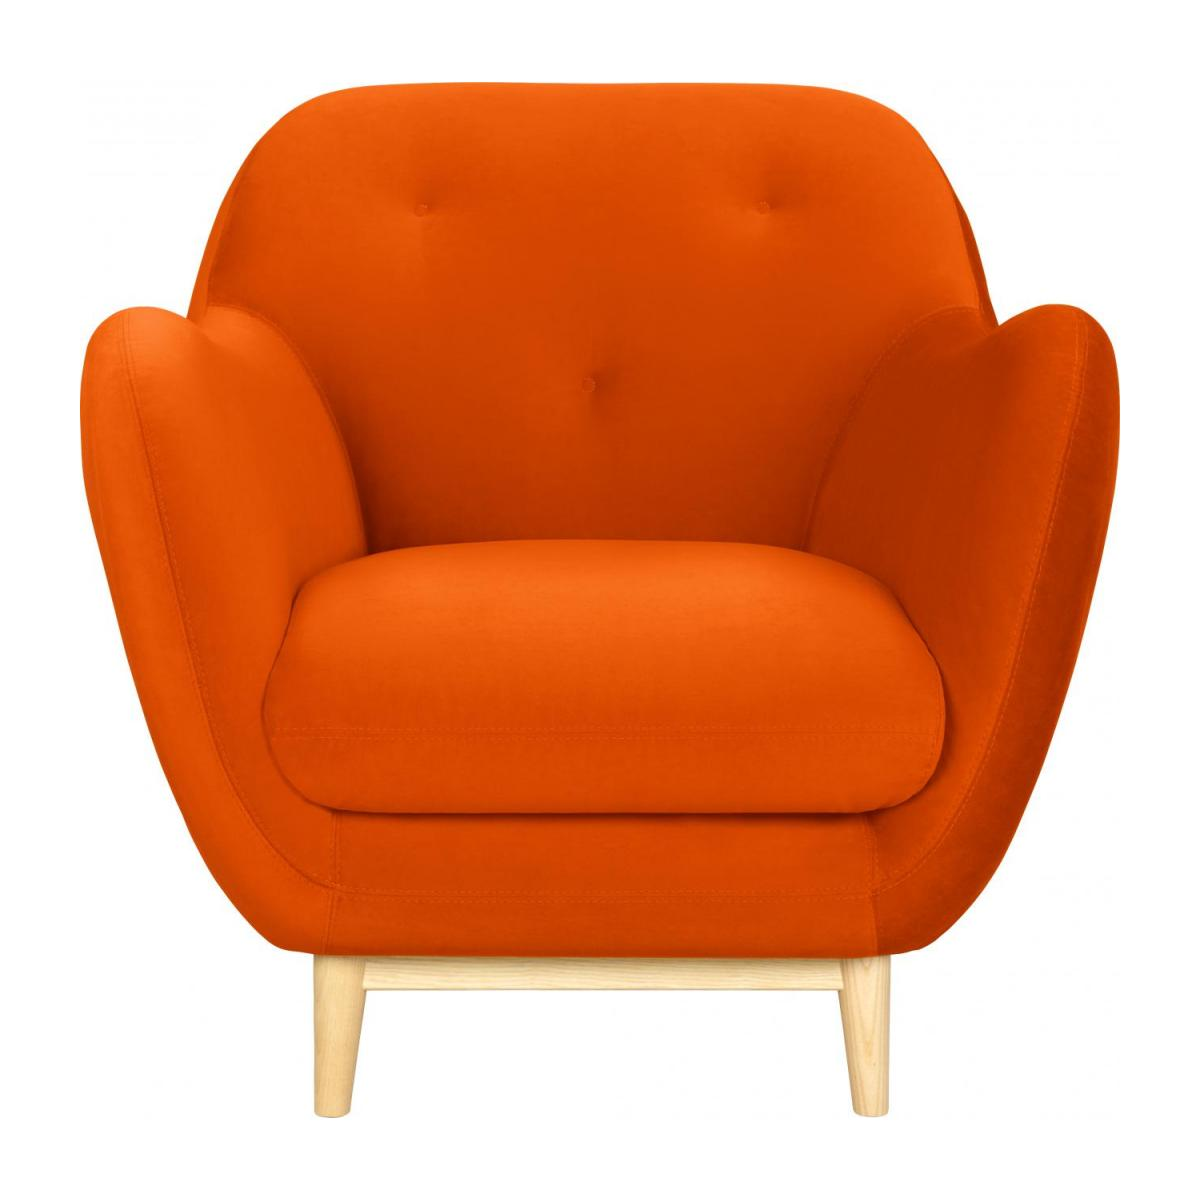 Melchior Sessel Aus Samt Orange Design By Adrien